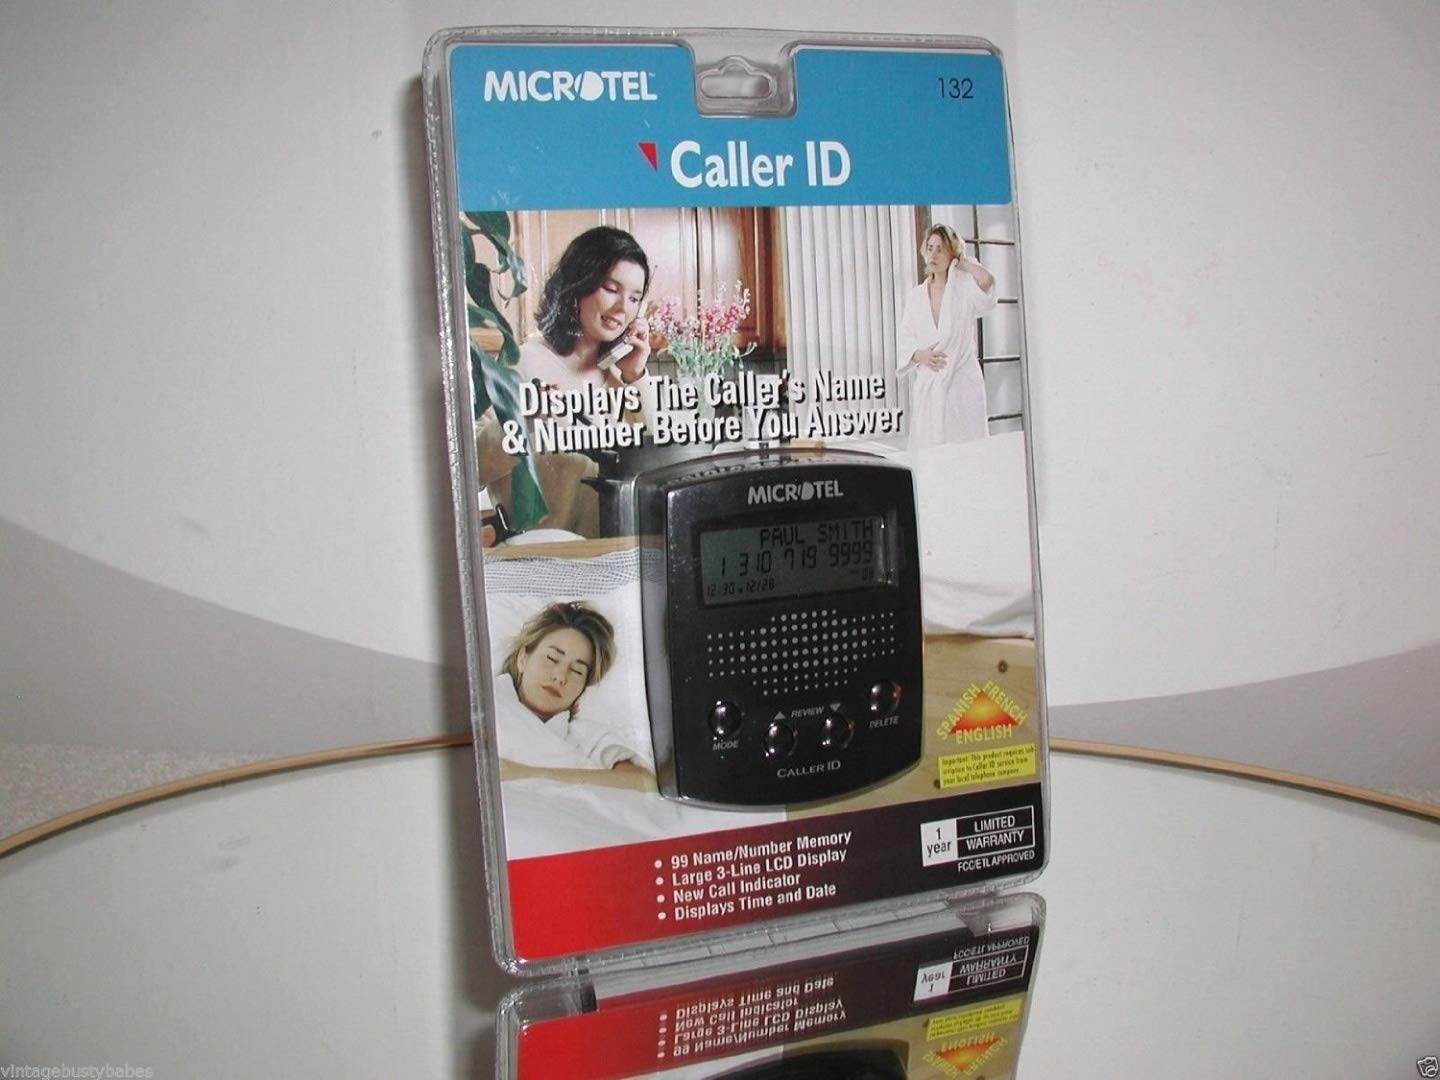 Microtel Caller ID Model 132